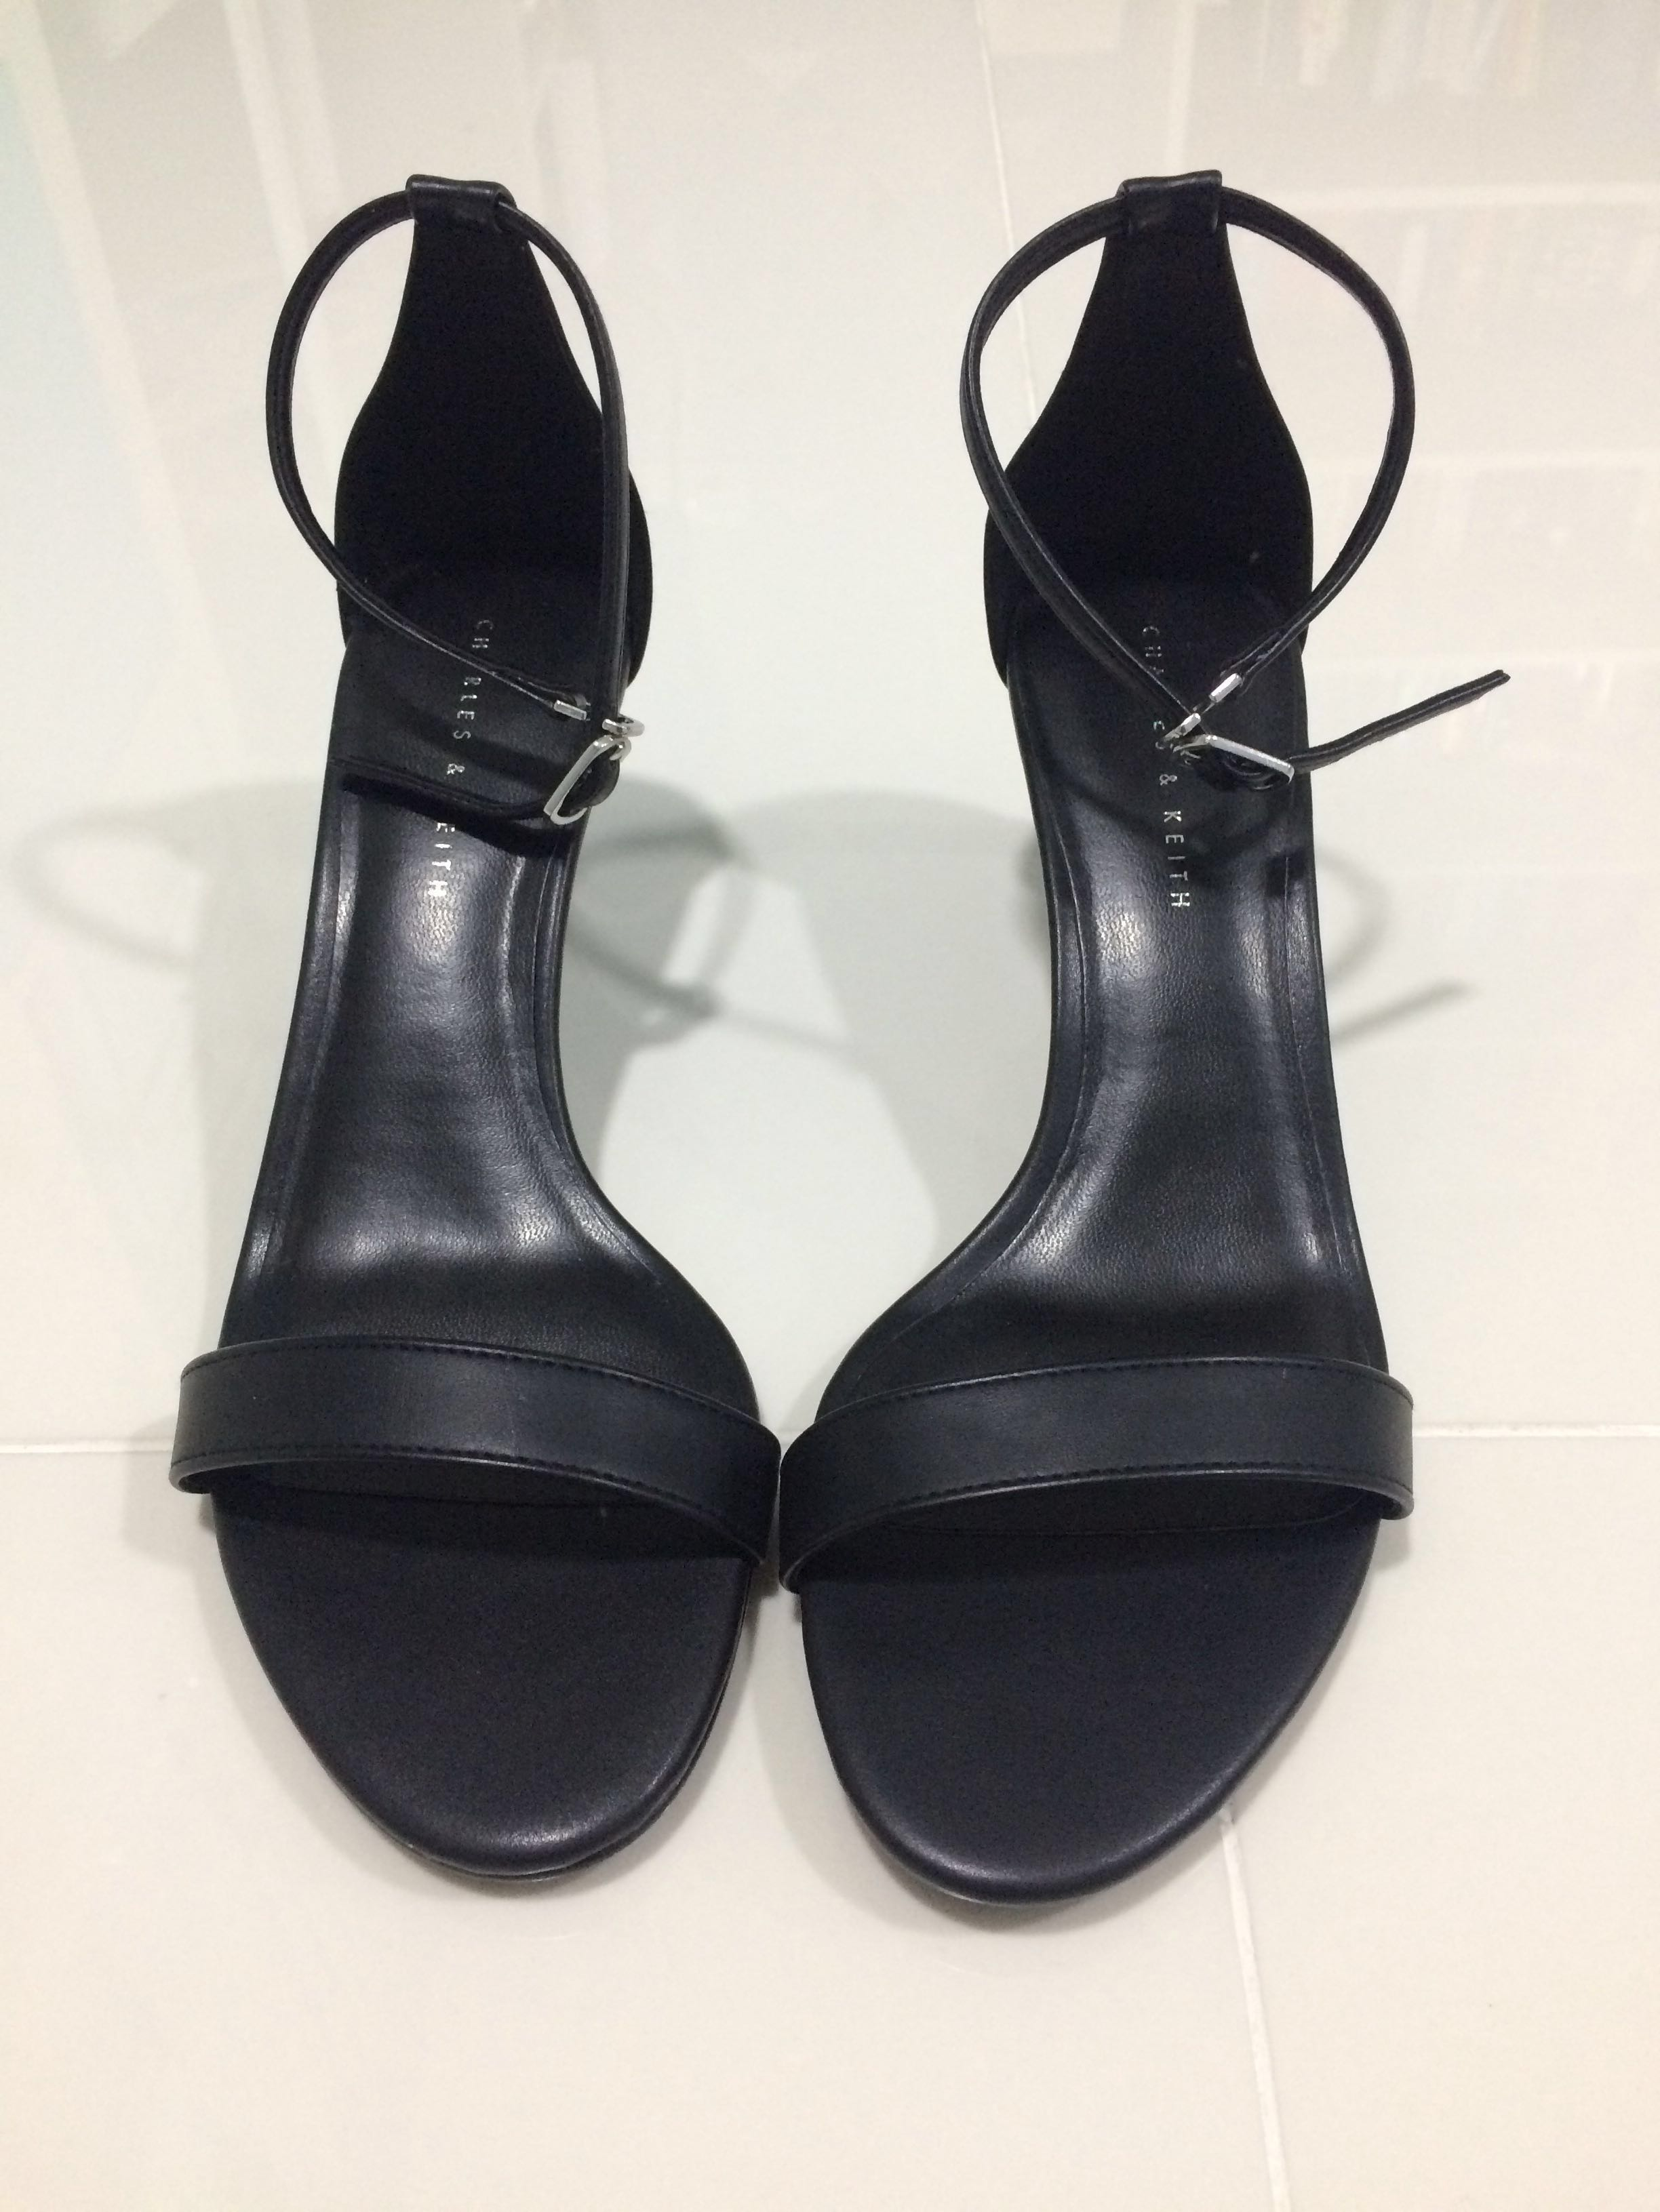 5577a6545f30 Charles & Keith Black Heels, Women's Fashion, Shoes, Heels on Carousell